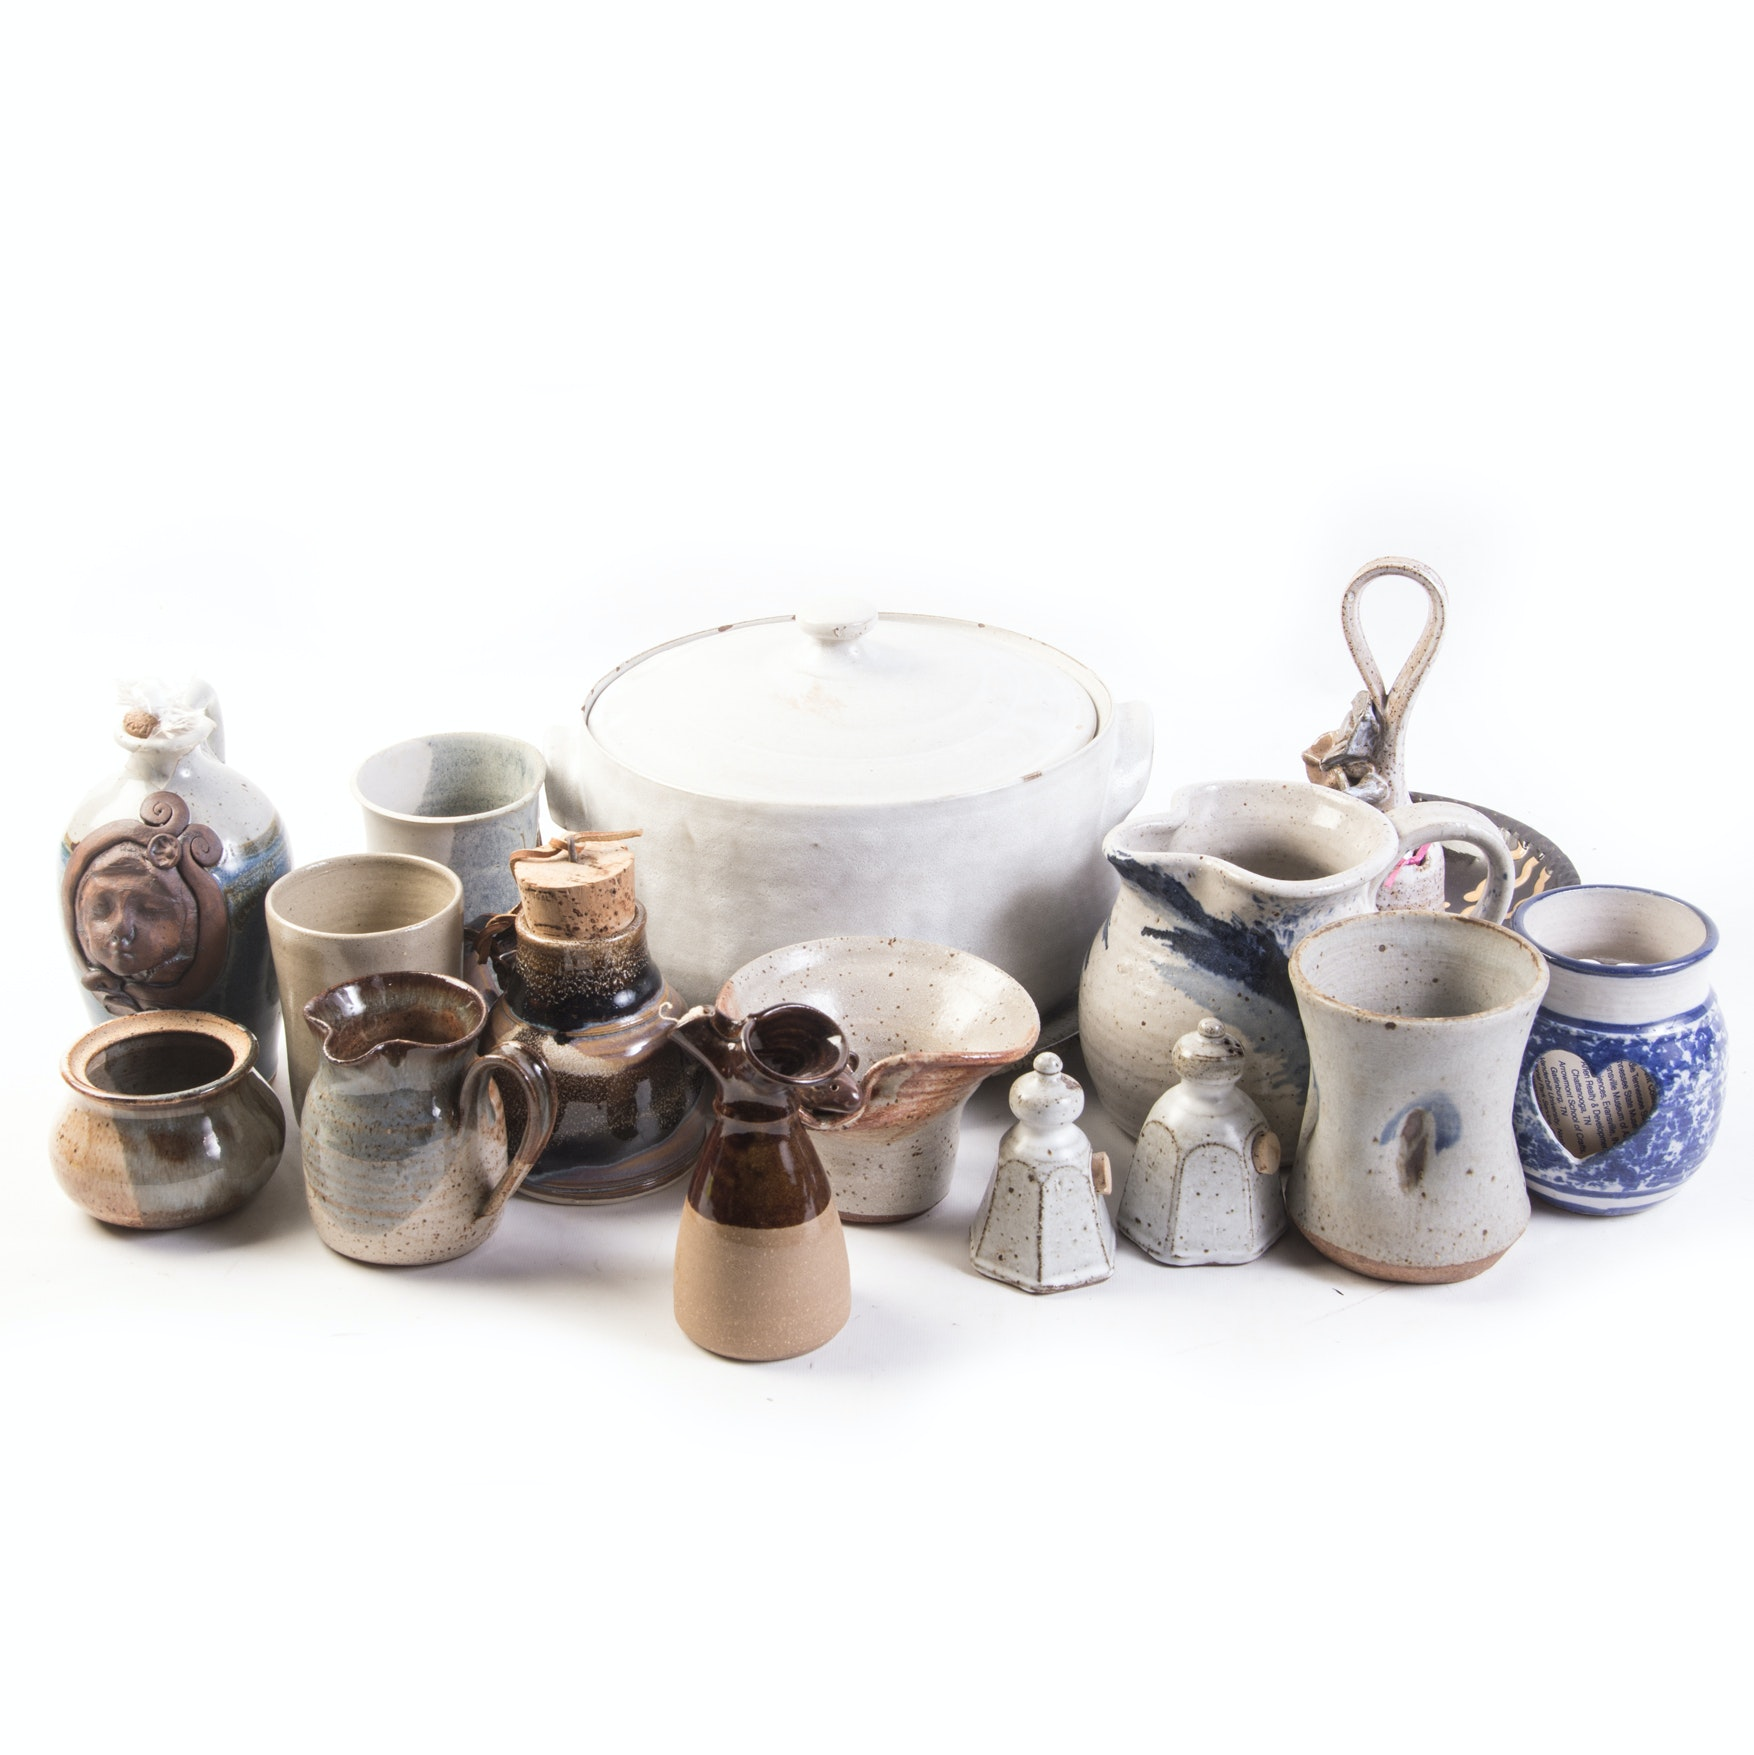 Generous Collection of Hand Thrown Stoneware Pottery